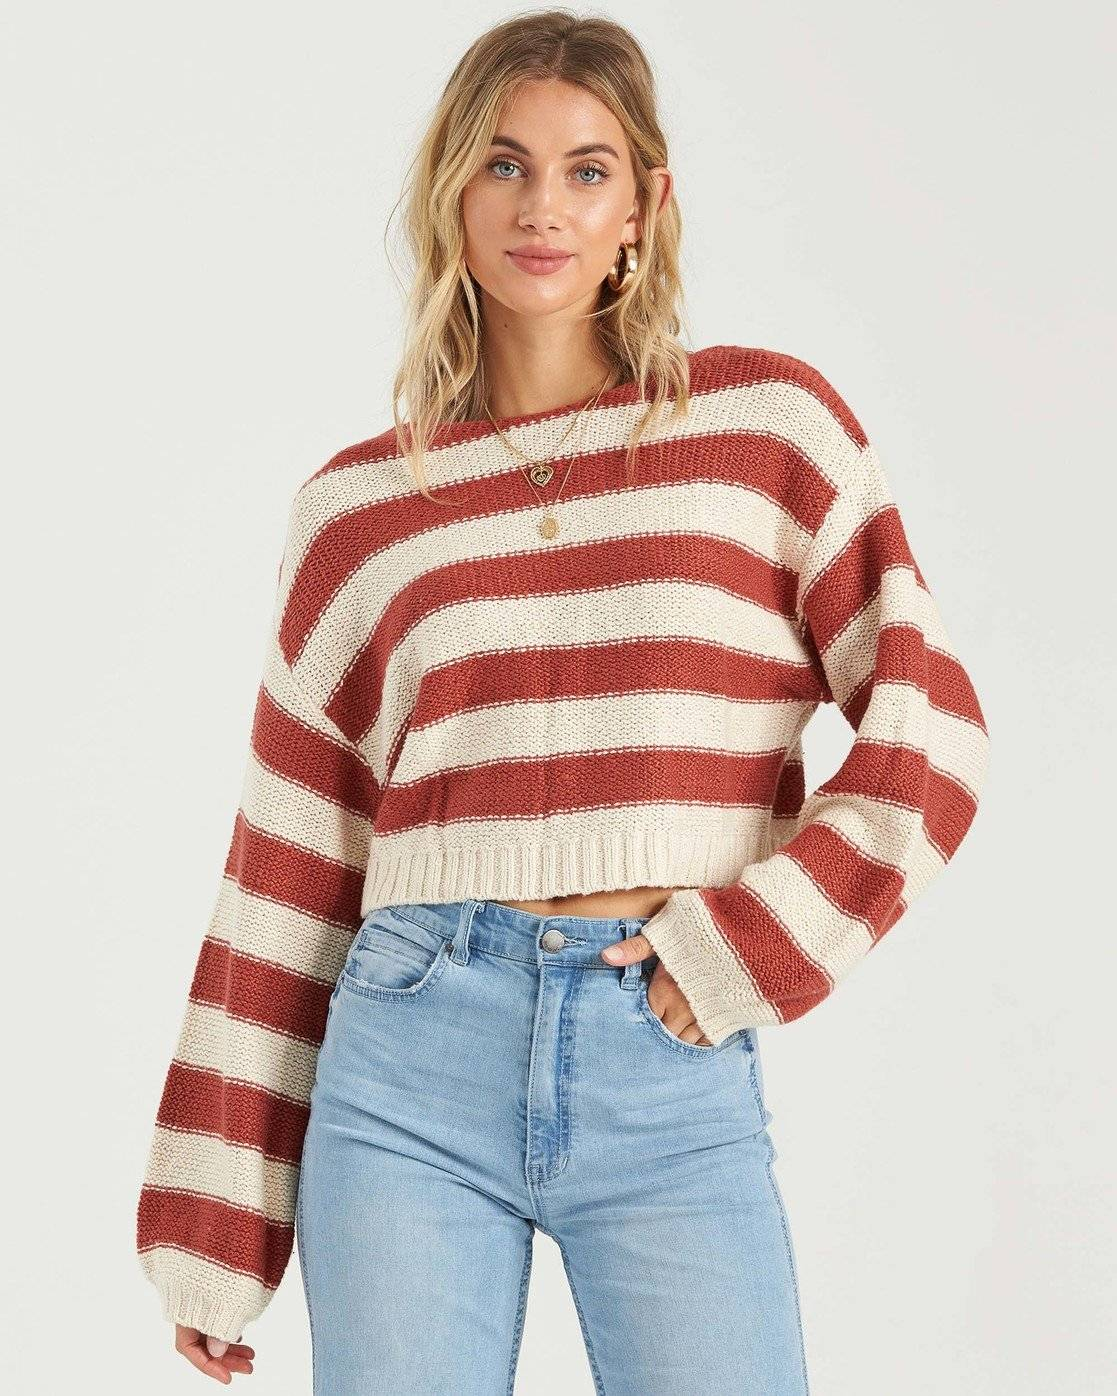 Billabong Seeing Stripes Sweater  - Red - Size: Large